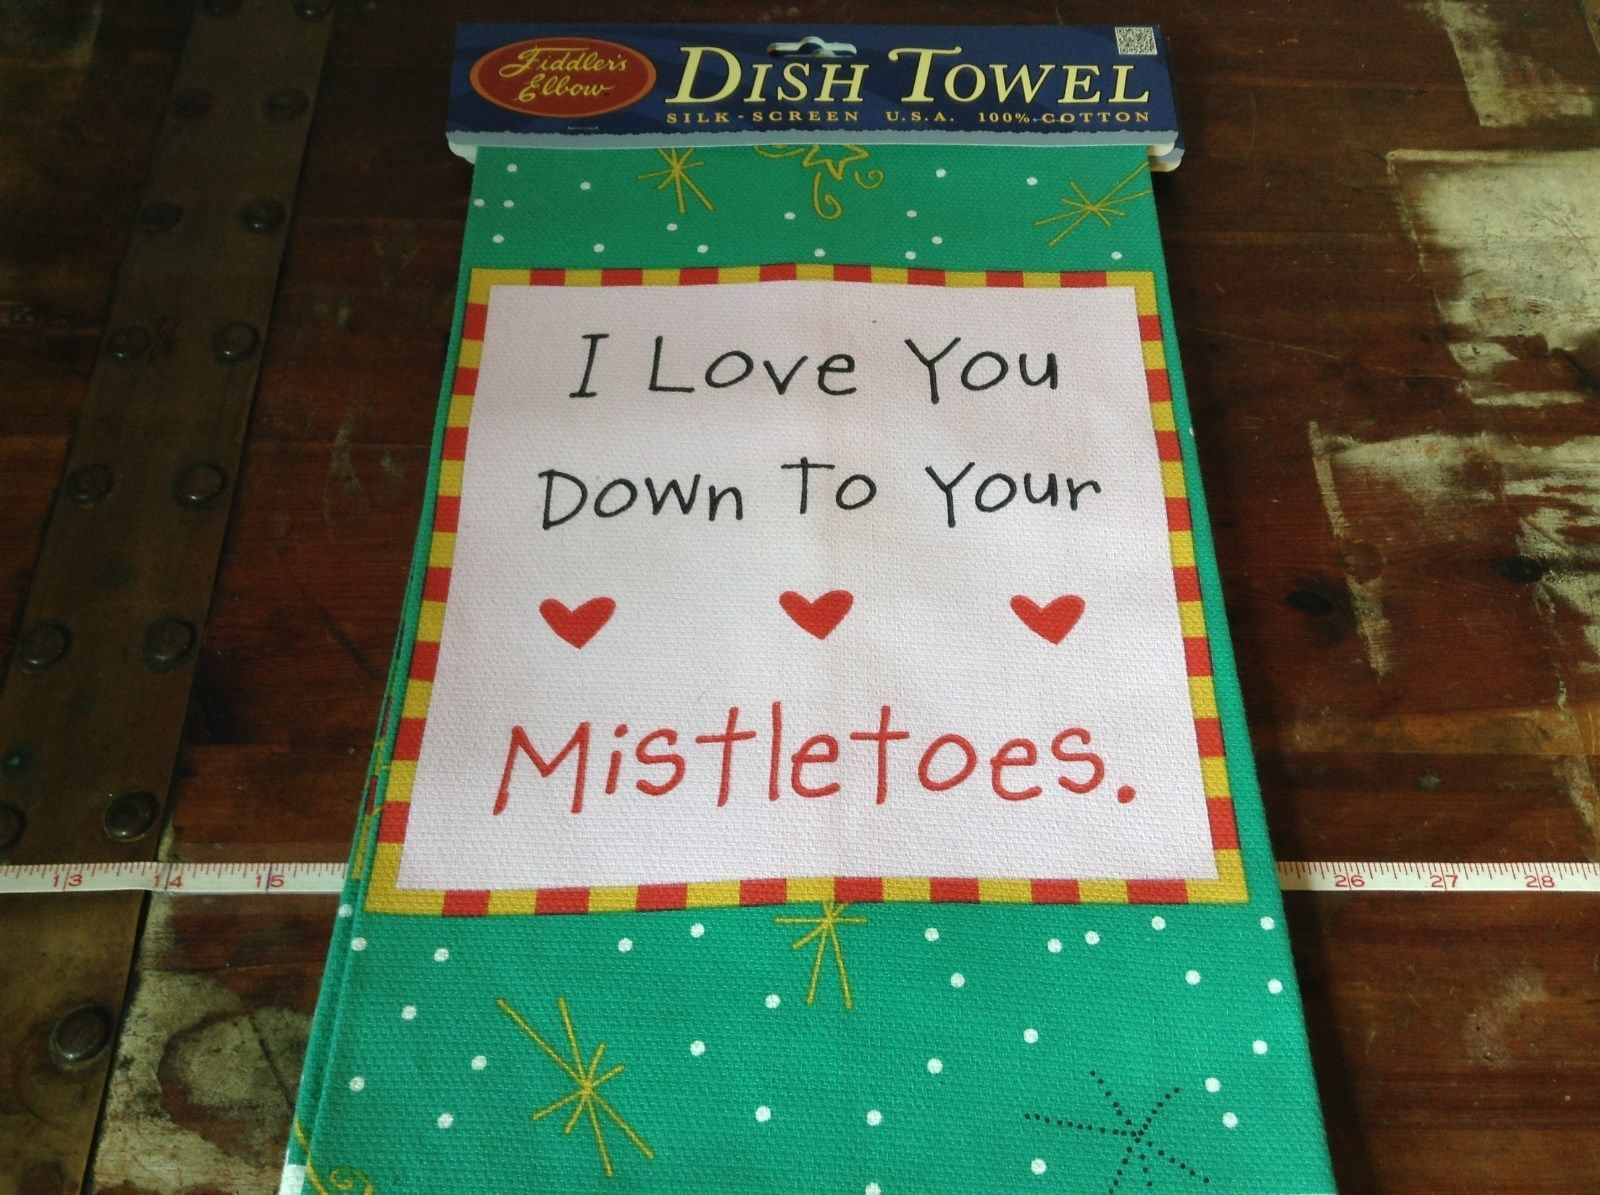 I Love You Down to Your Mistletoes on Fiddlers Elbow Card Dish Towel Made in USA